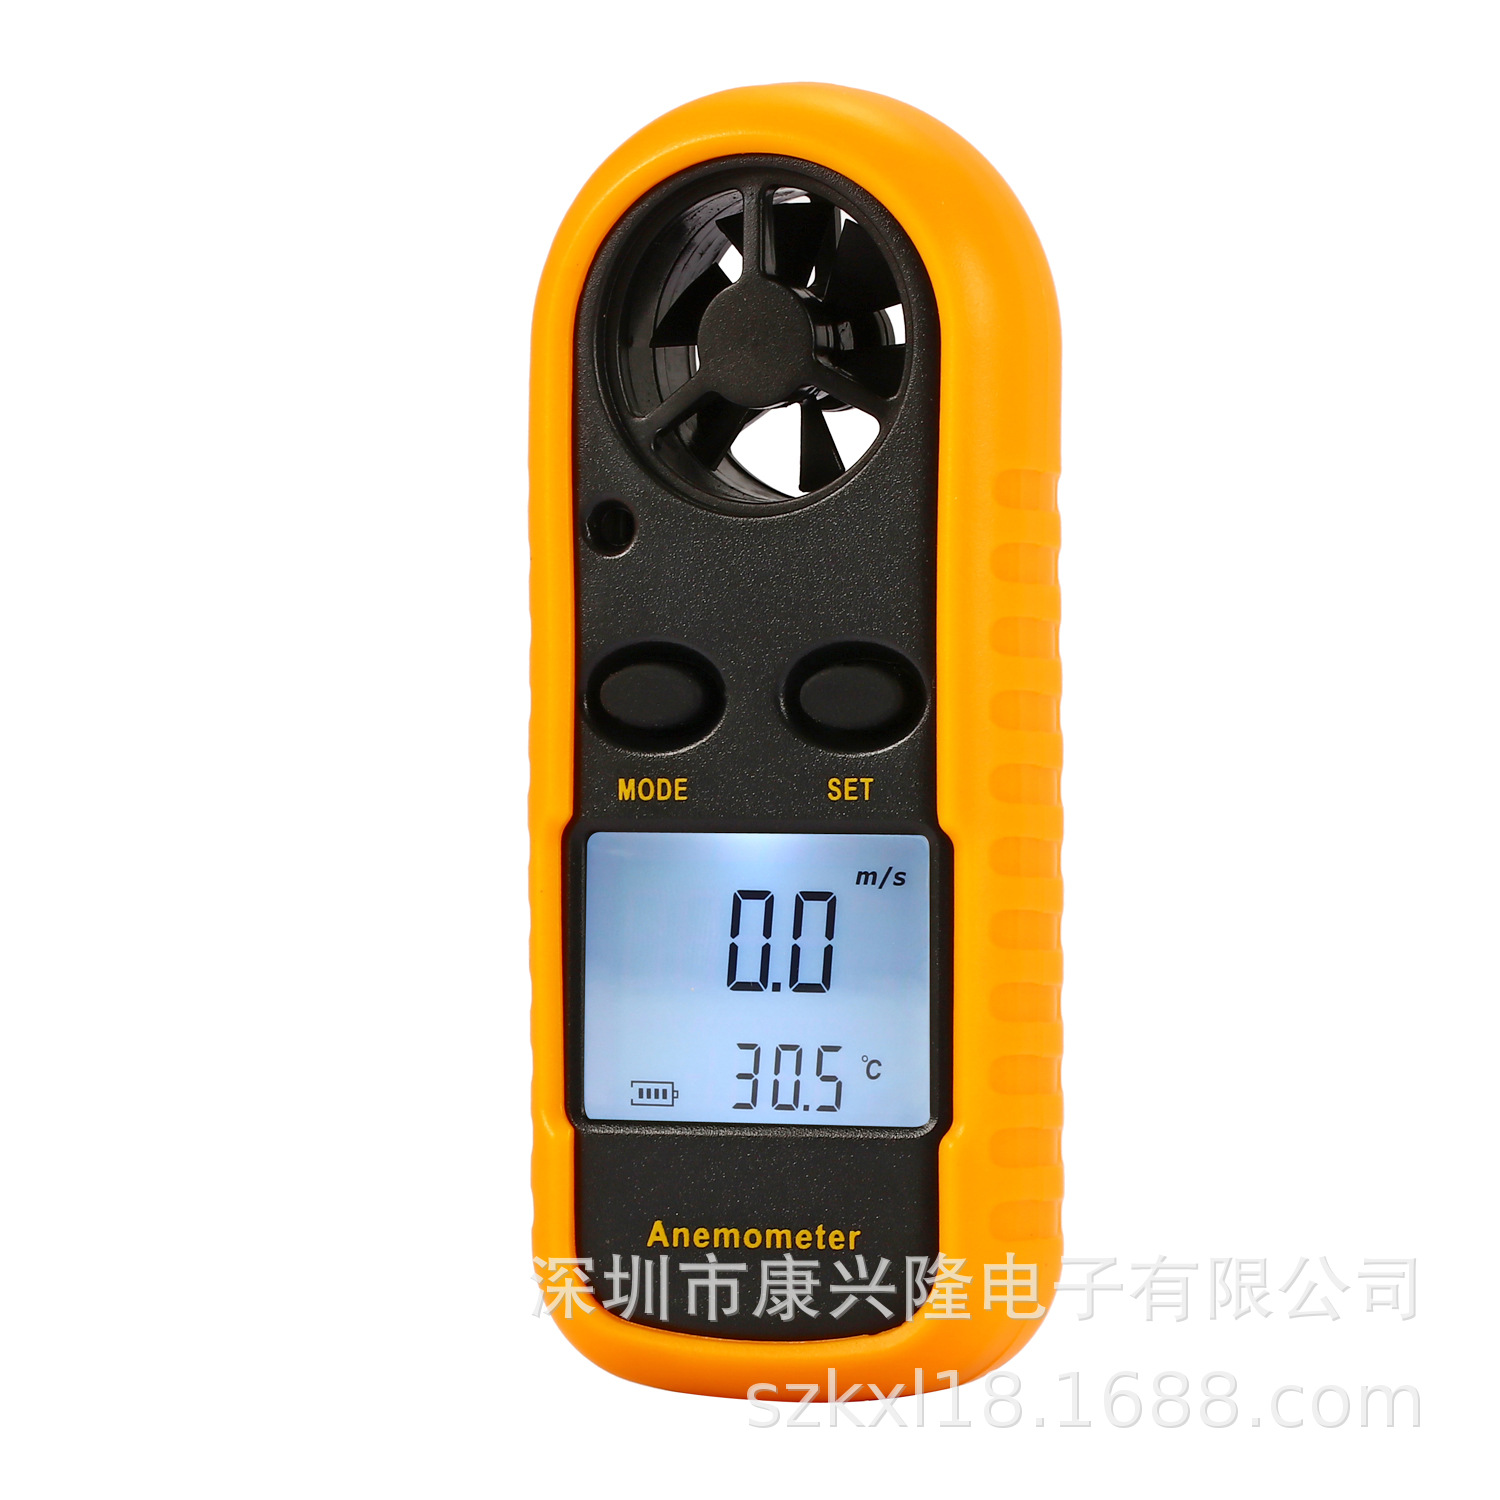 Mini Digital Wind Speed Meter Anemometer Thermometer Temperature Measuring